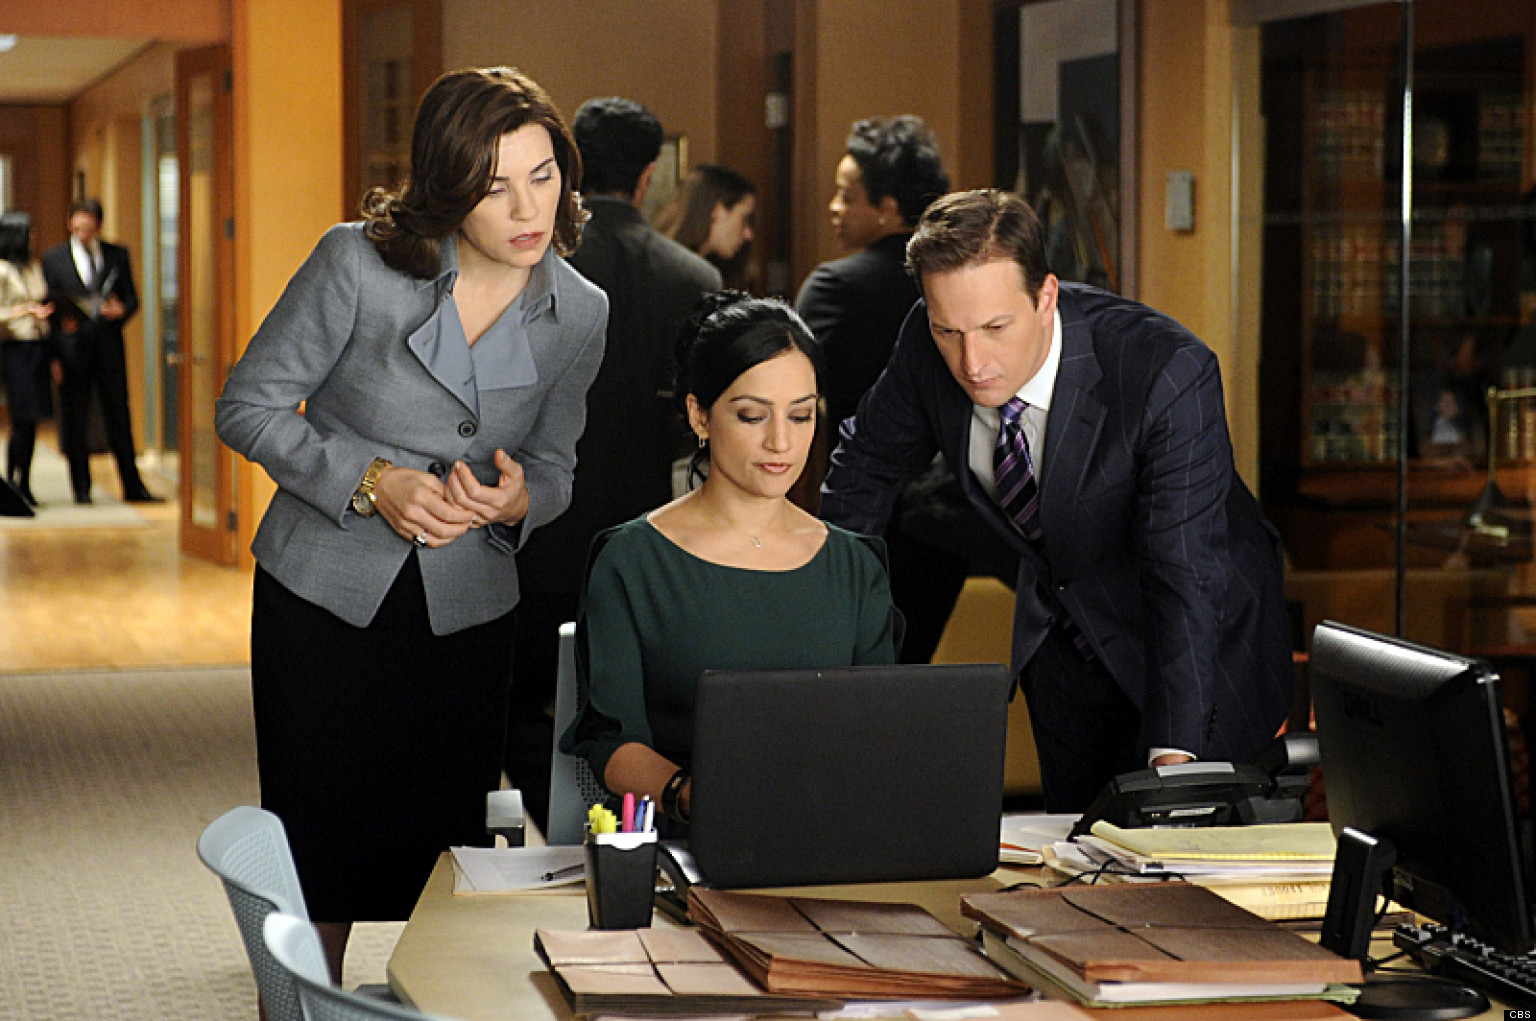 'The Good Wife' Recap: Scandal in 'Loser Edit' | HuffPost